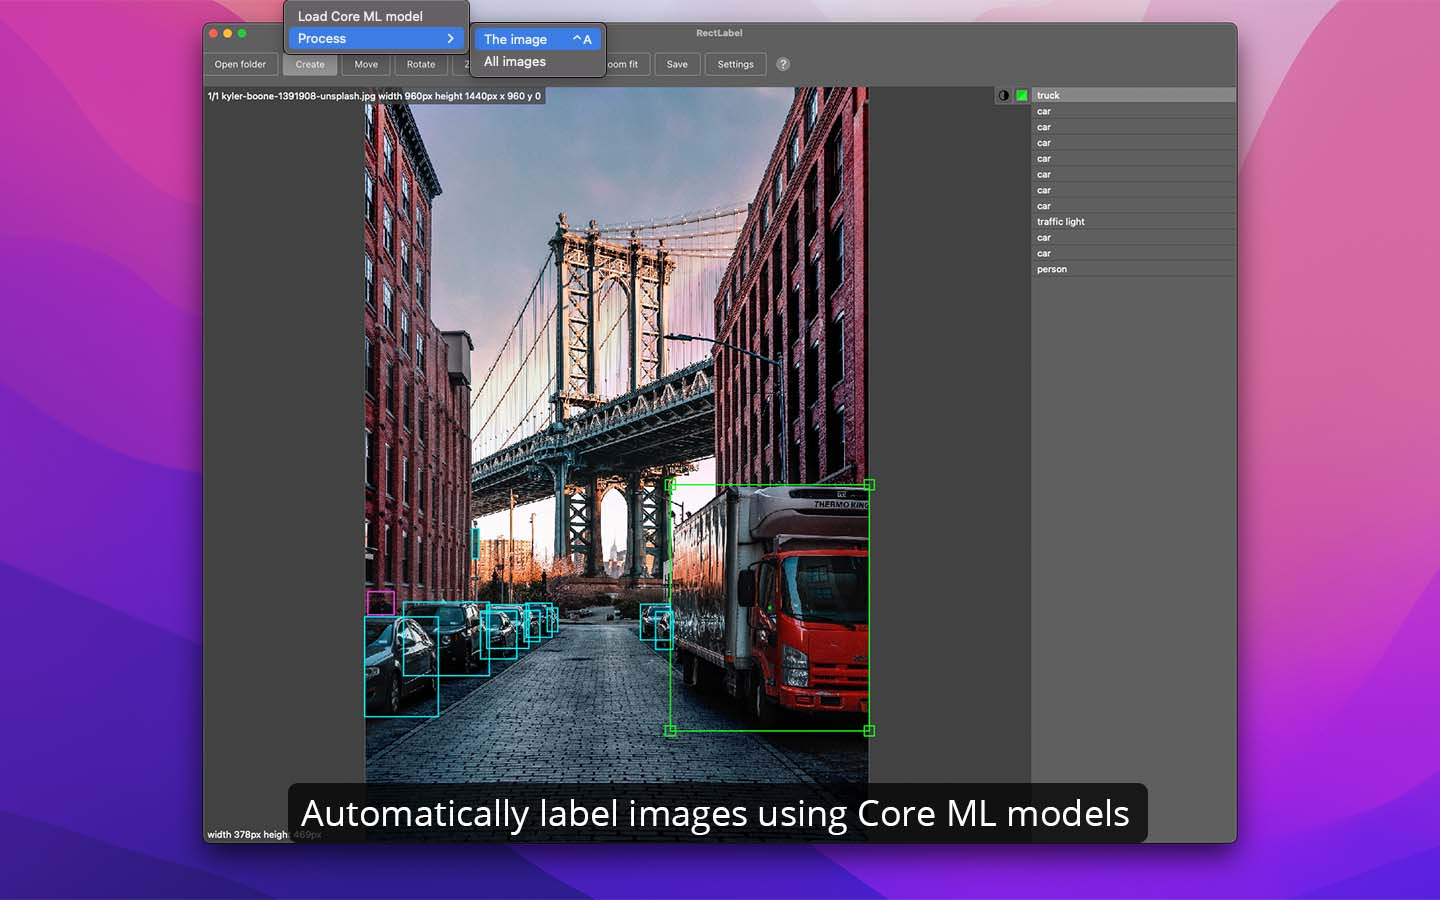 Automatically label images using Core ML models